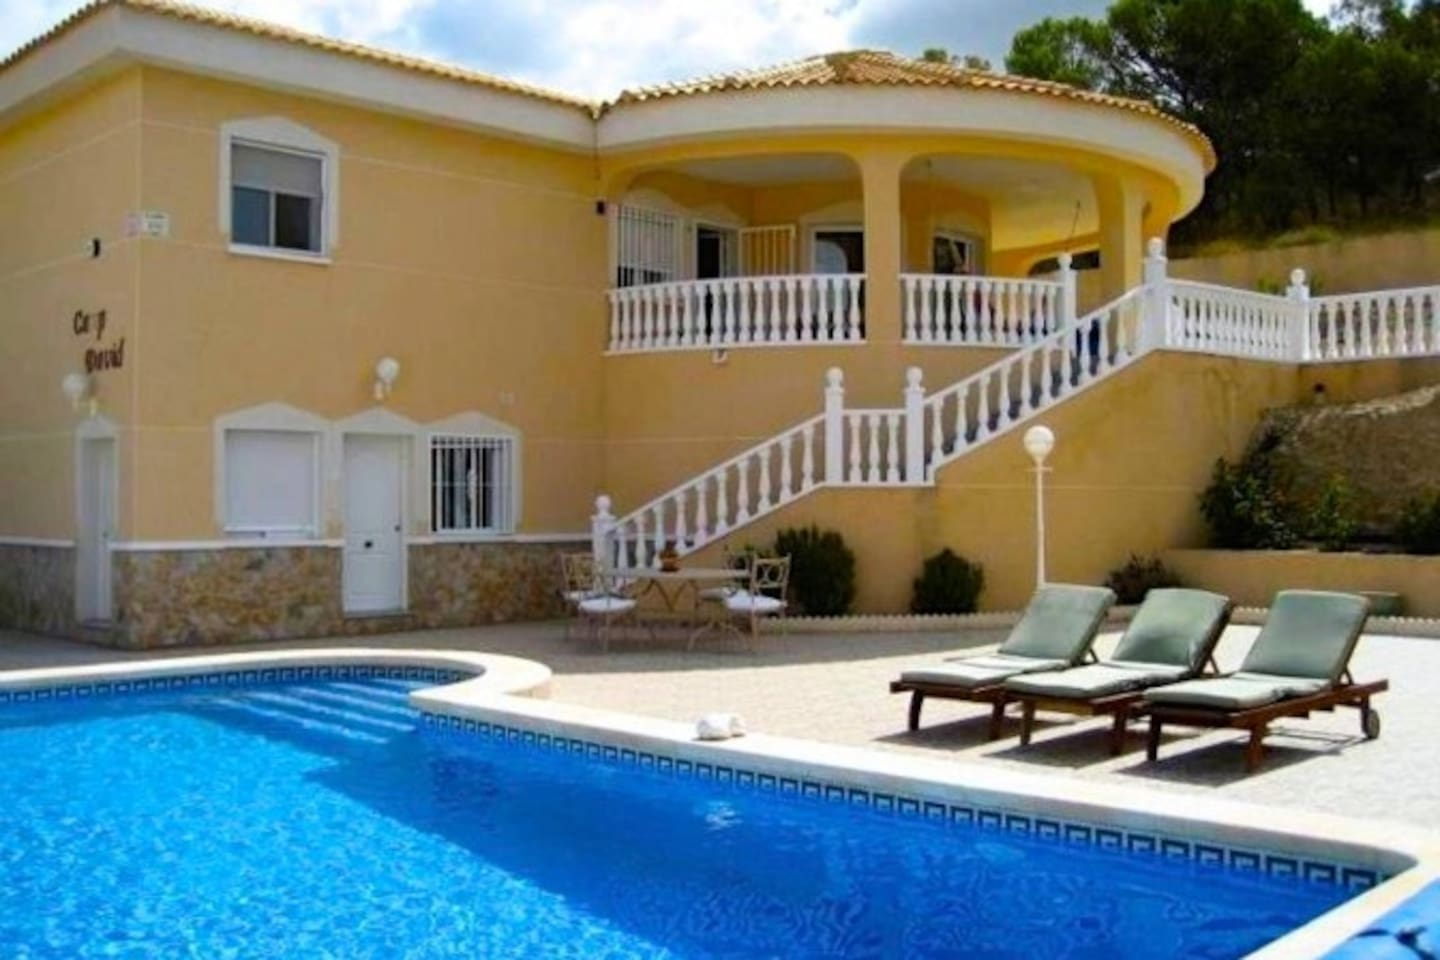 Only Ground floor is for rent! The entrance in separate apartment is a white door on this photo  Owners are living on upper flor (family with a child). The swimming pool will be shared only with Owners... Sunbeds are for our guests ( people who is renting)